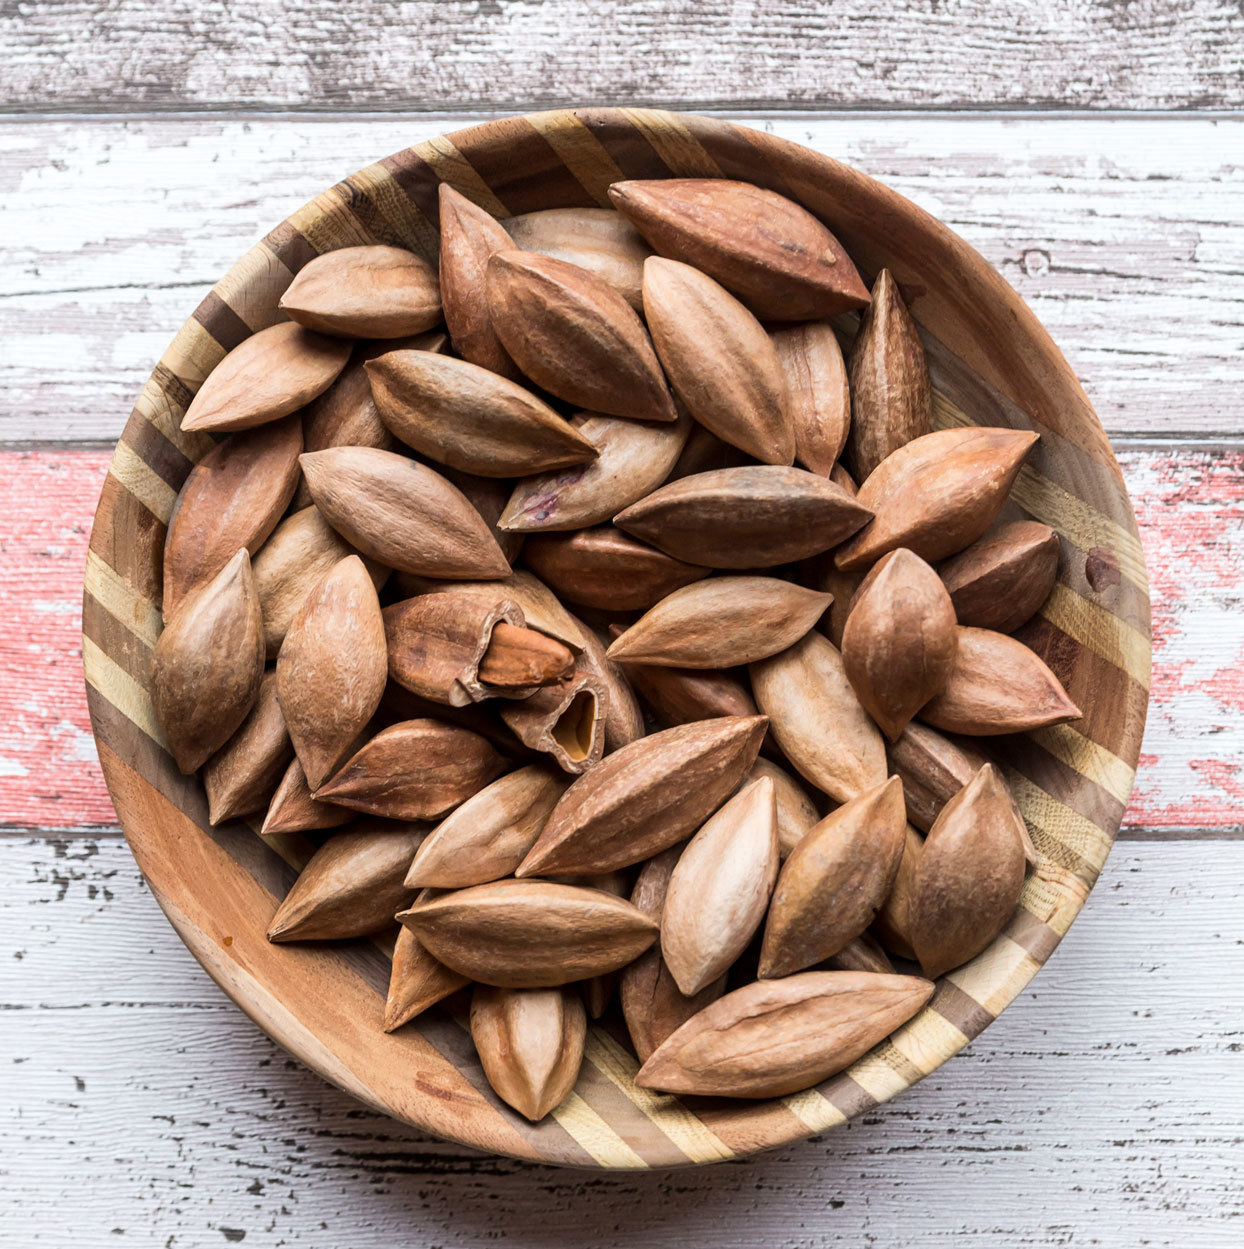 What Are Pili Nuts—And Are They Good For You?